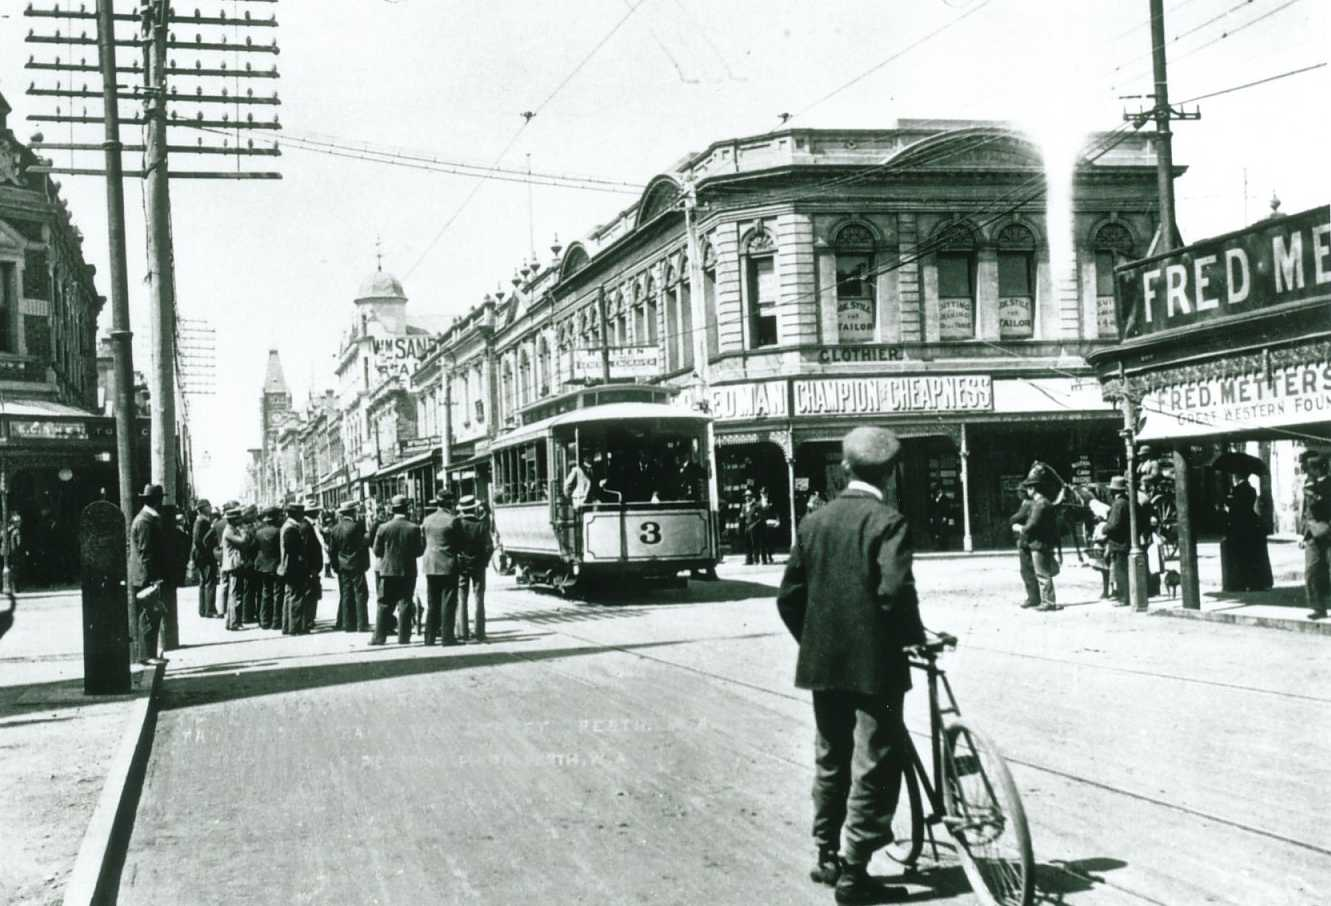 opening_day_perth_tramway_1899.jpg